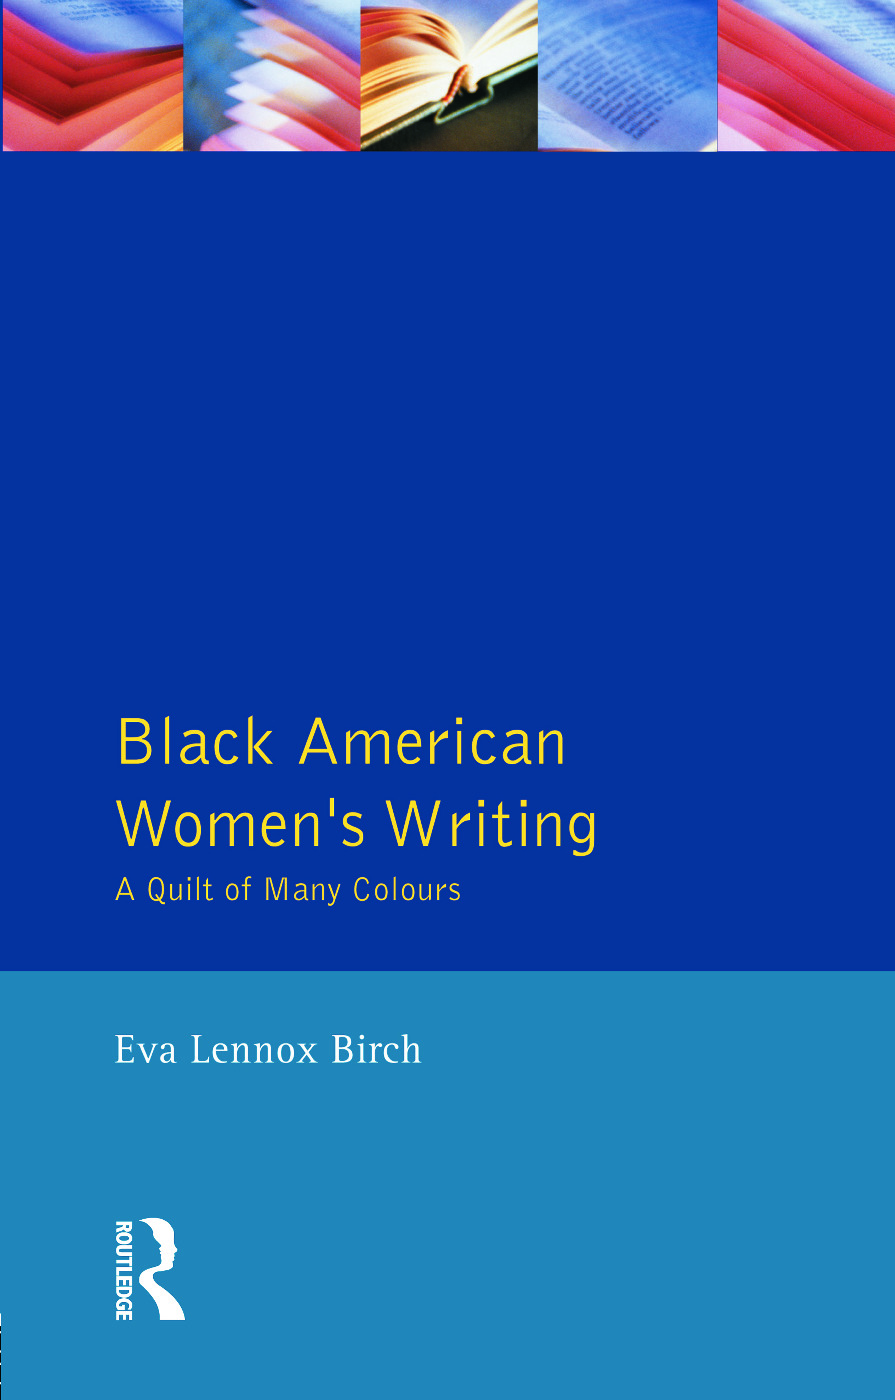 Black American Women's Writings